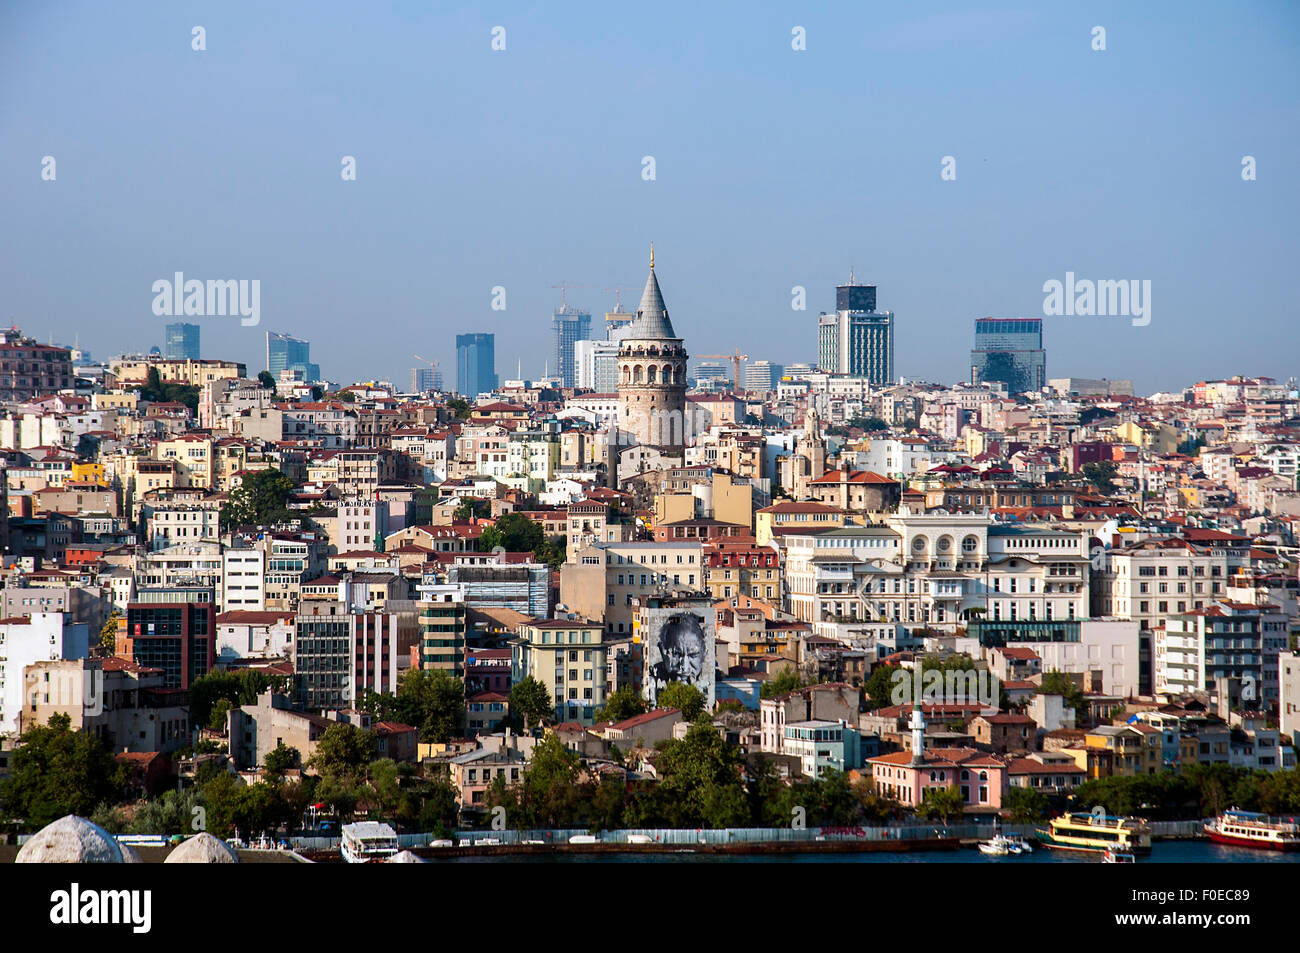 Beyoglu district historic architecture and Galata tower medieval landmark in Istanbul, Turkey - Stock Image